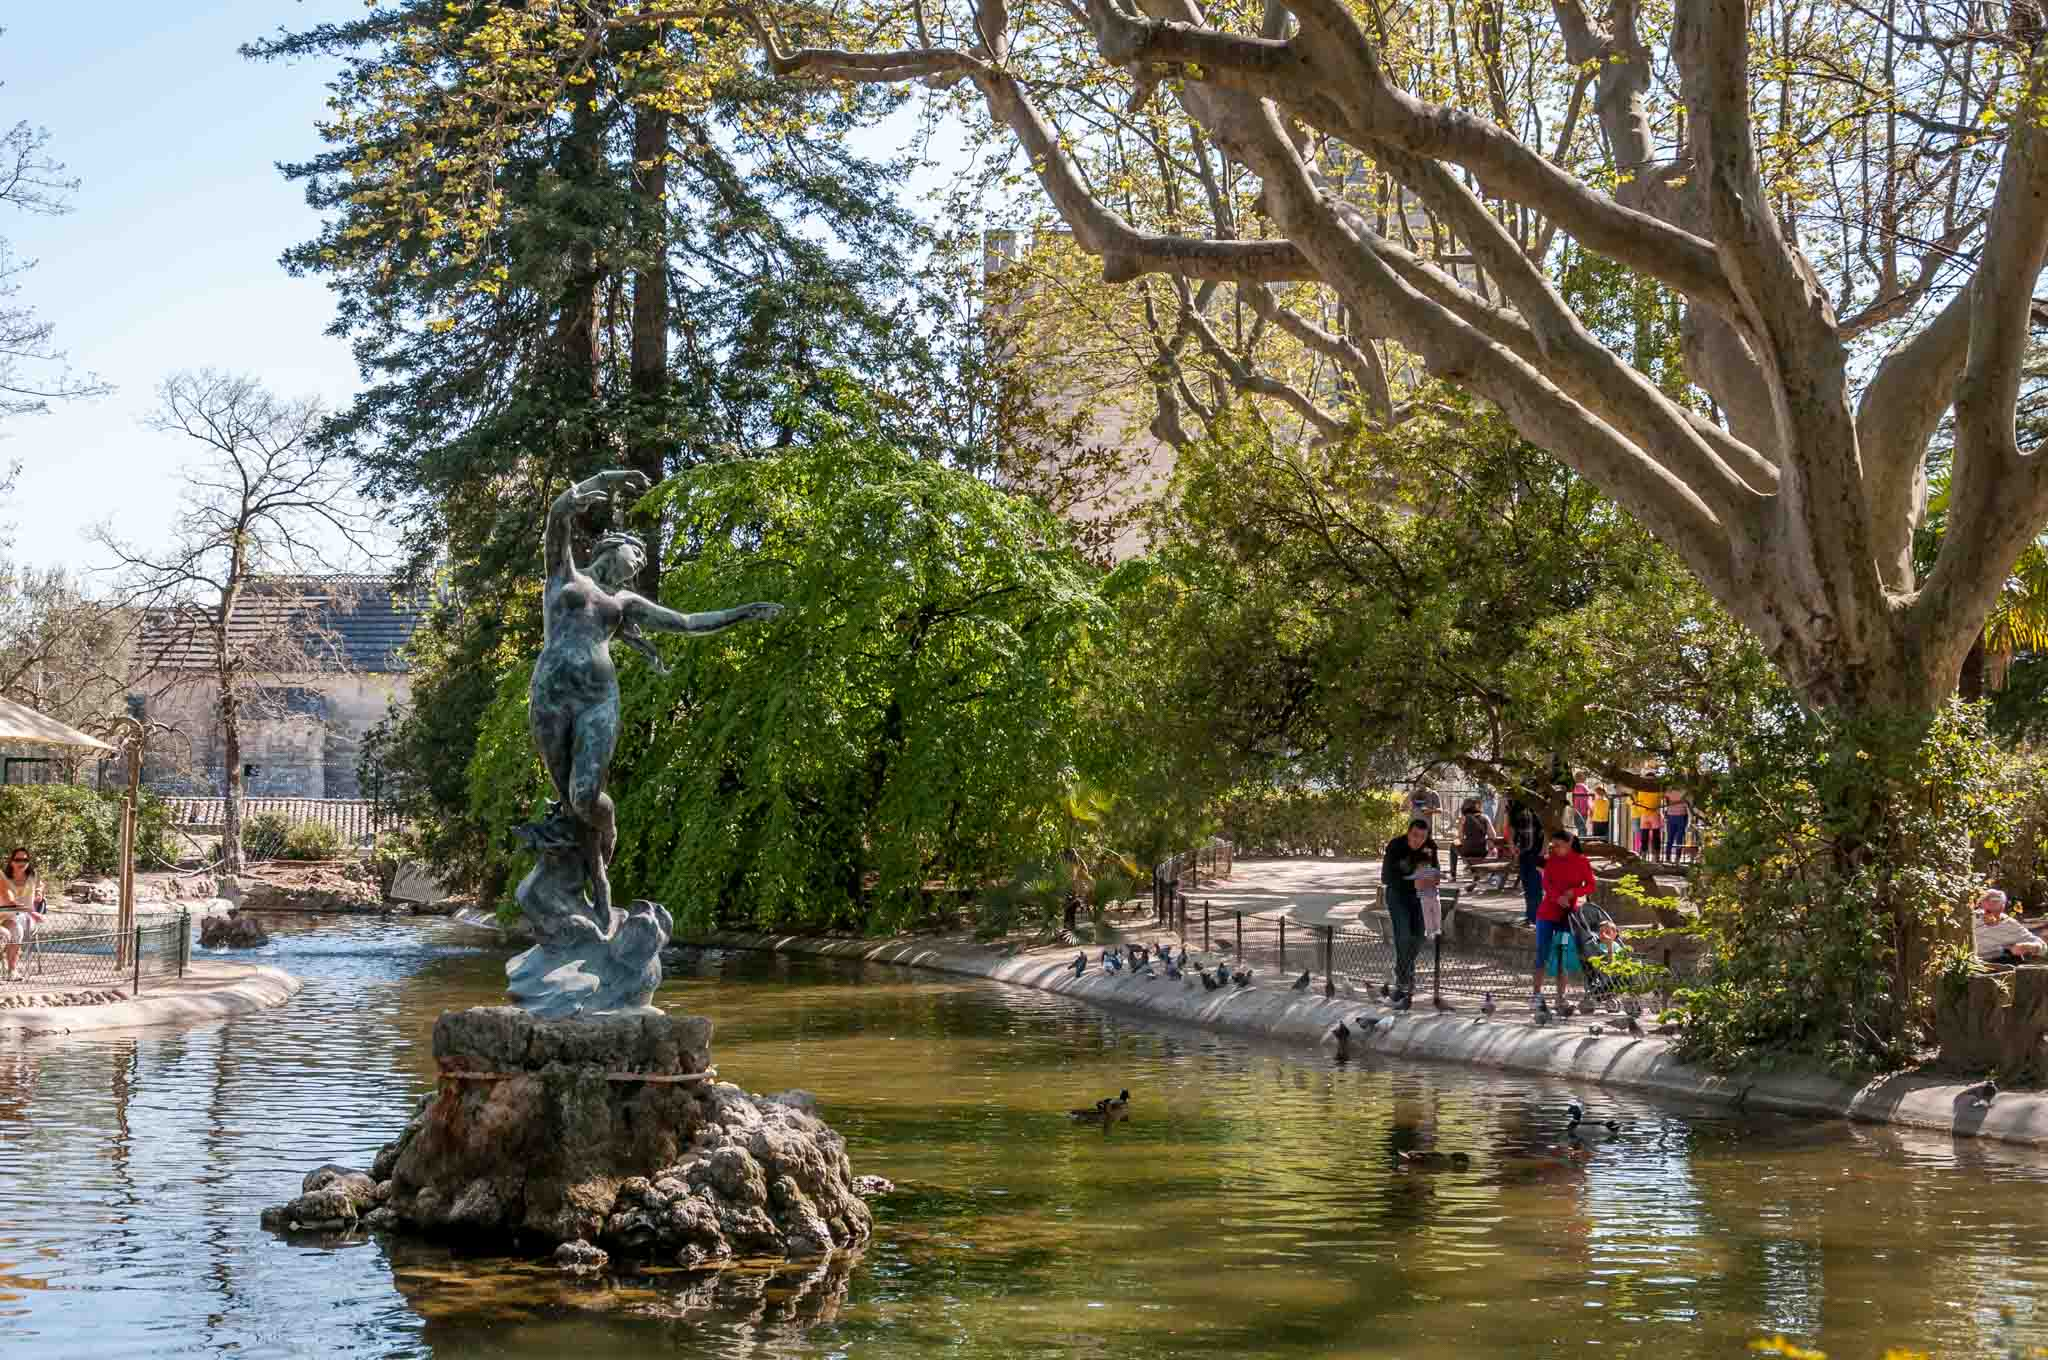 Fountain and pond at Parc Rocher des Doms in Avignon, a stop on a 10-day itinerary in the South of France